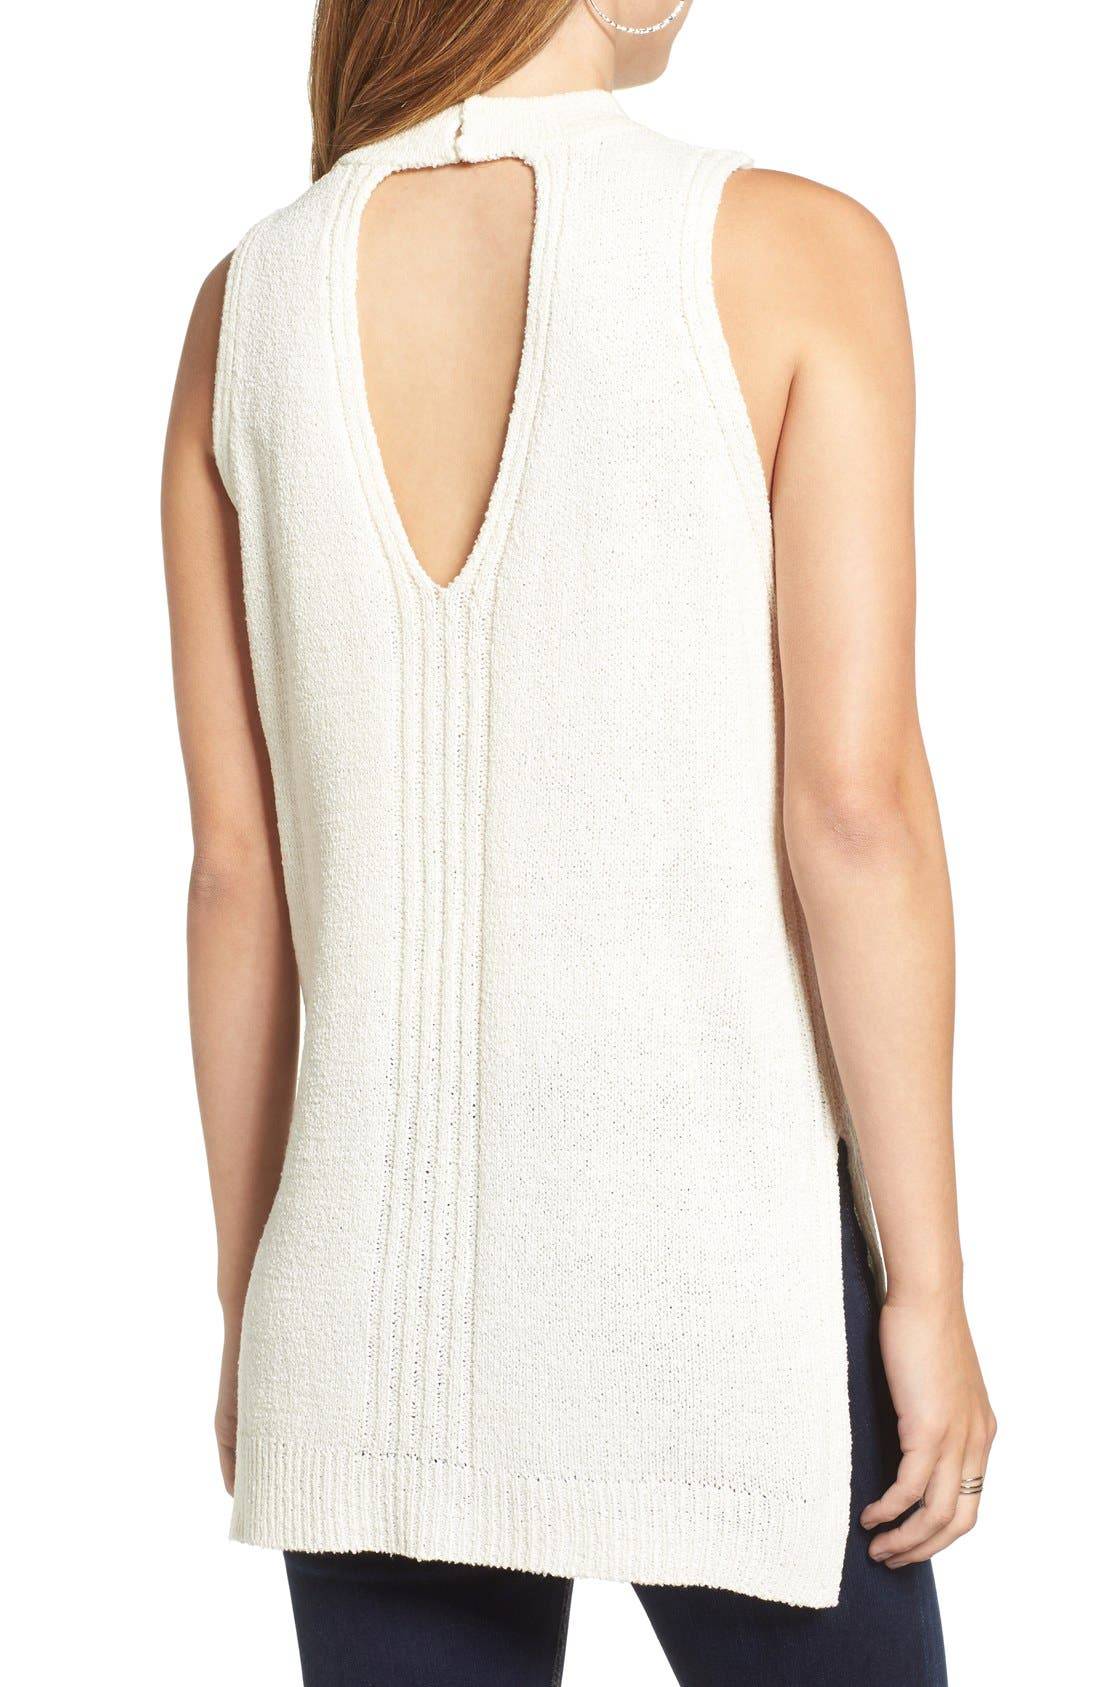 Alternate Image 2  - ASTR Choker Detail Sleeveless Sweater